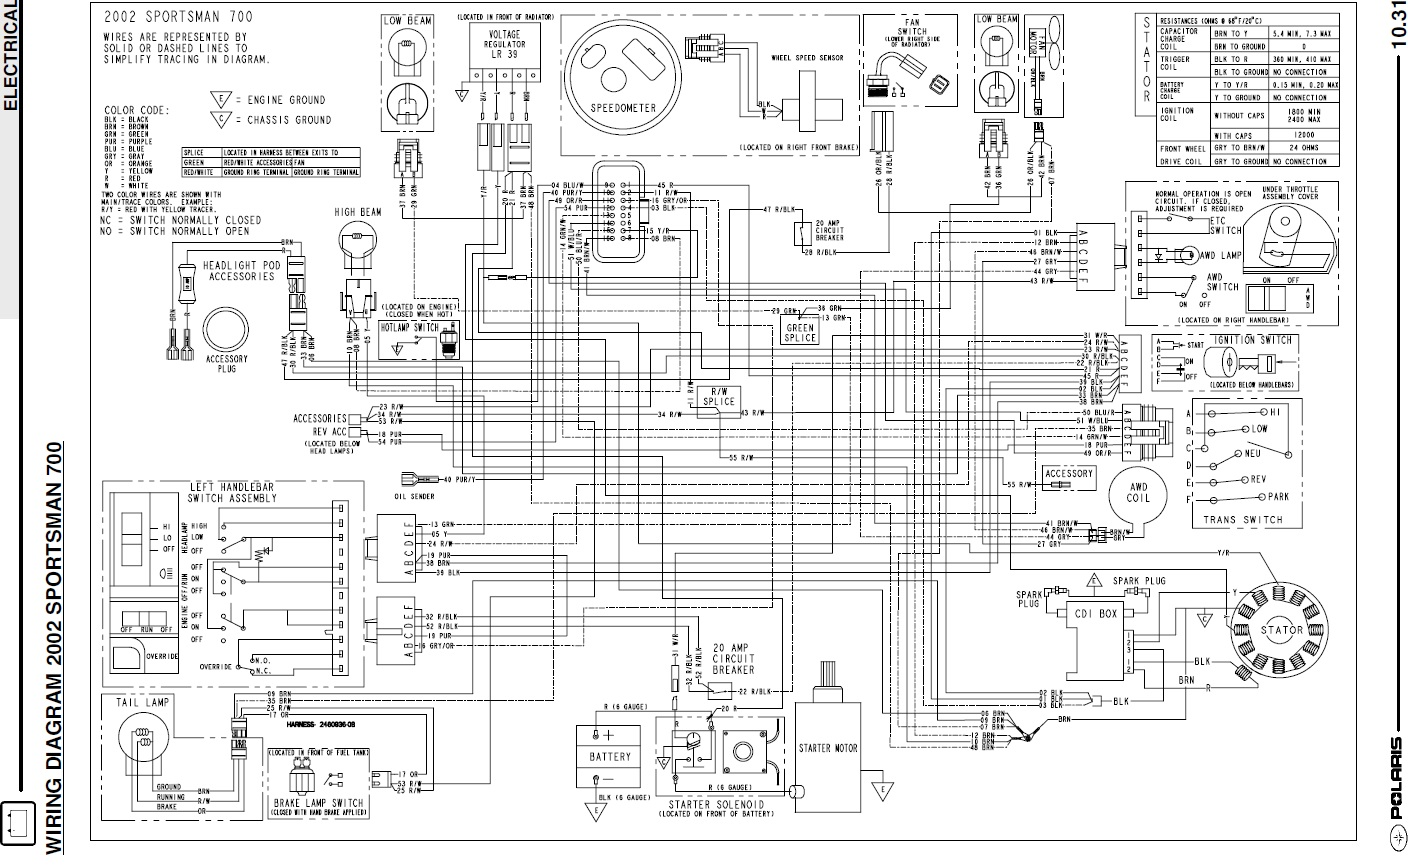 2011 Polaris Ranger Wiring Diagram General Wiring Diagram Engineer Engineer Justrollingwith It